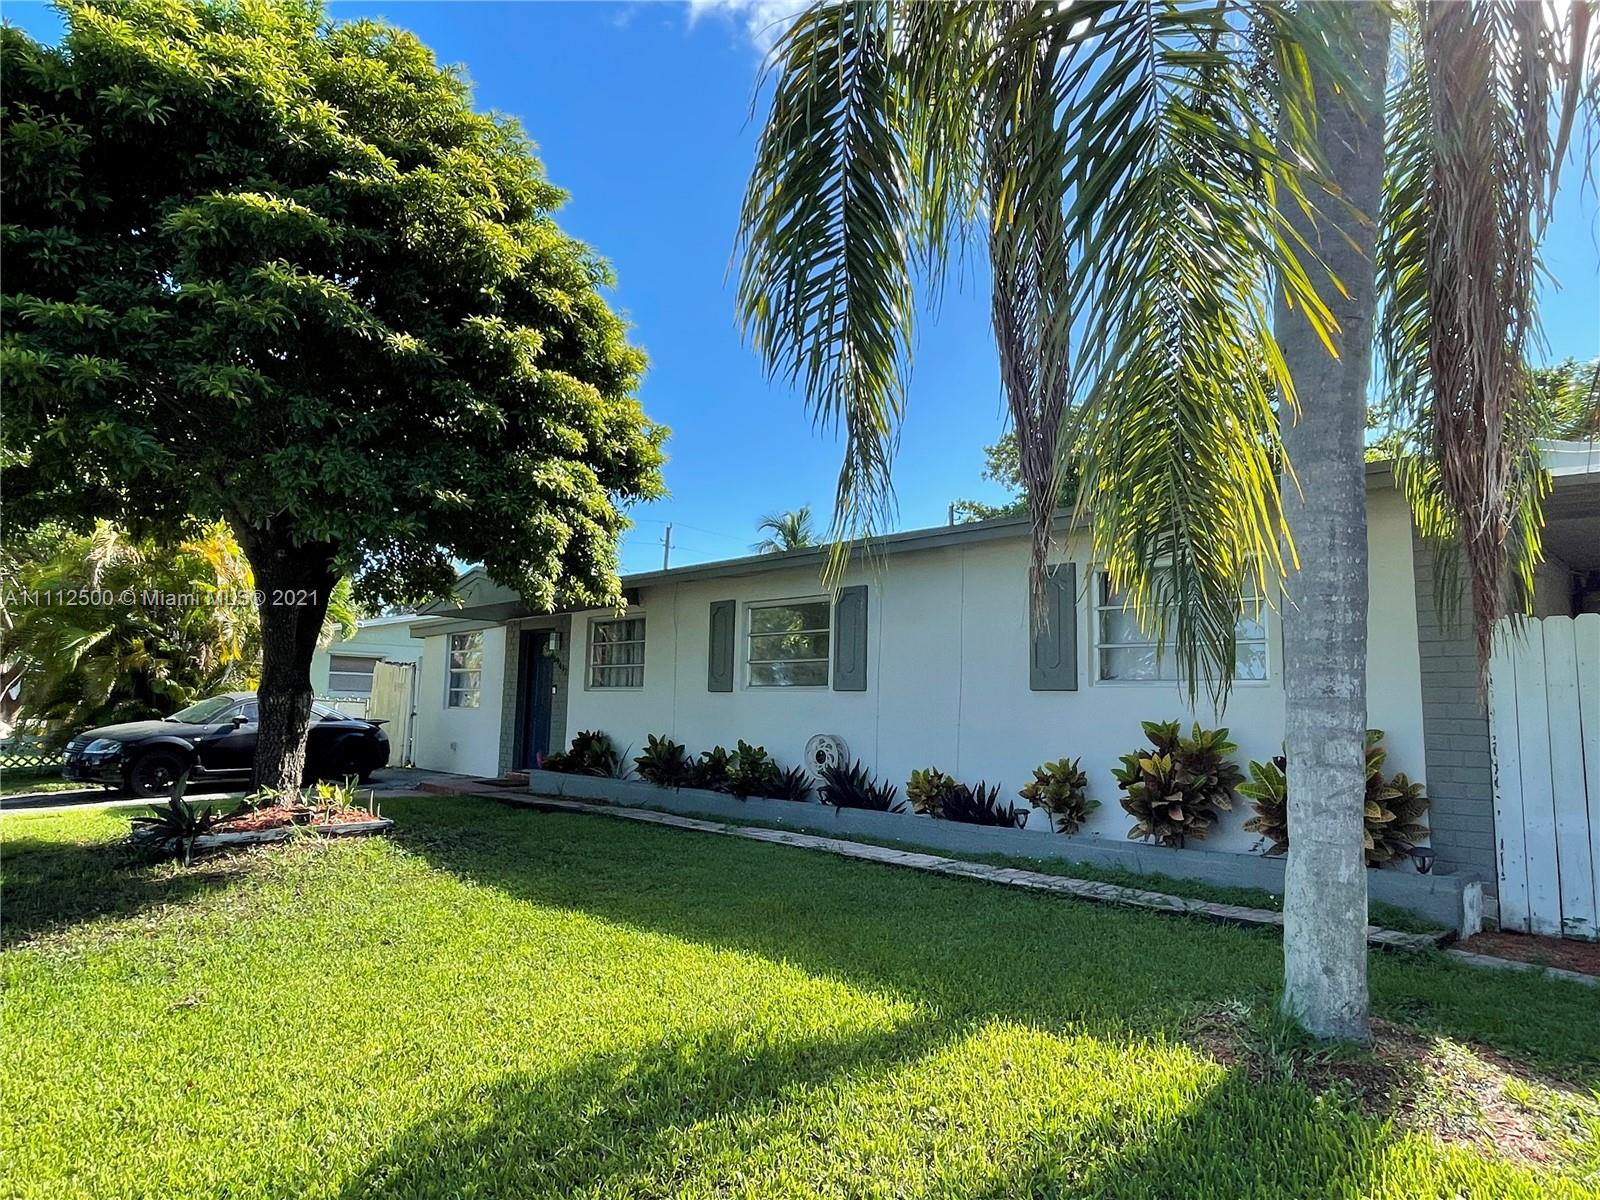 Single Family Home,For Rent,19417 SW 97th Pl #19417, Cutler Bay, Florida 33157,Brickell,realty,broker,condos near me